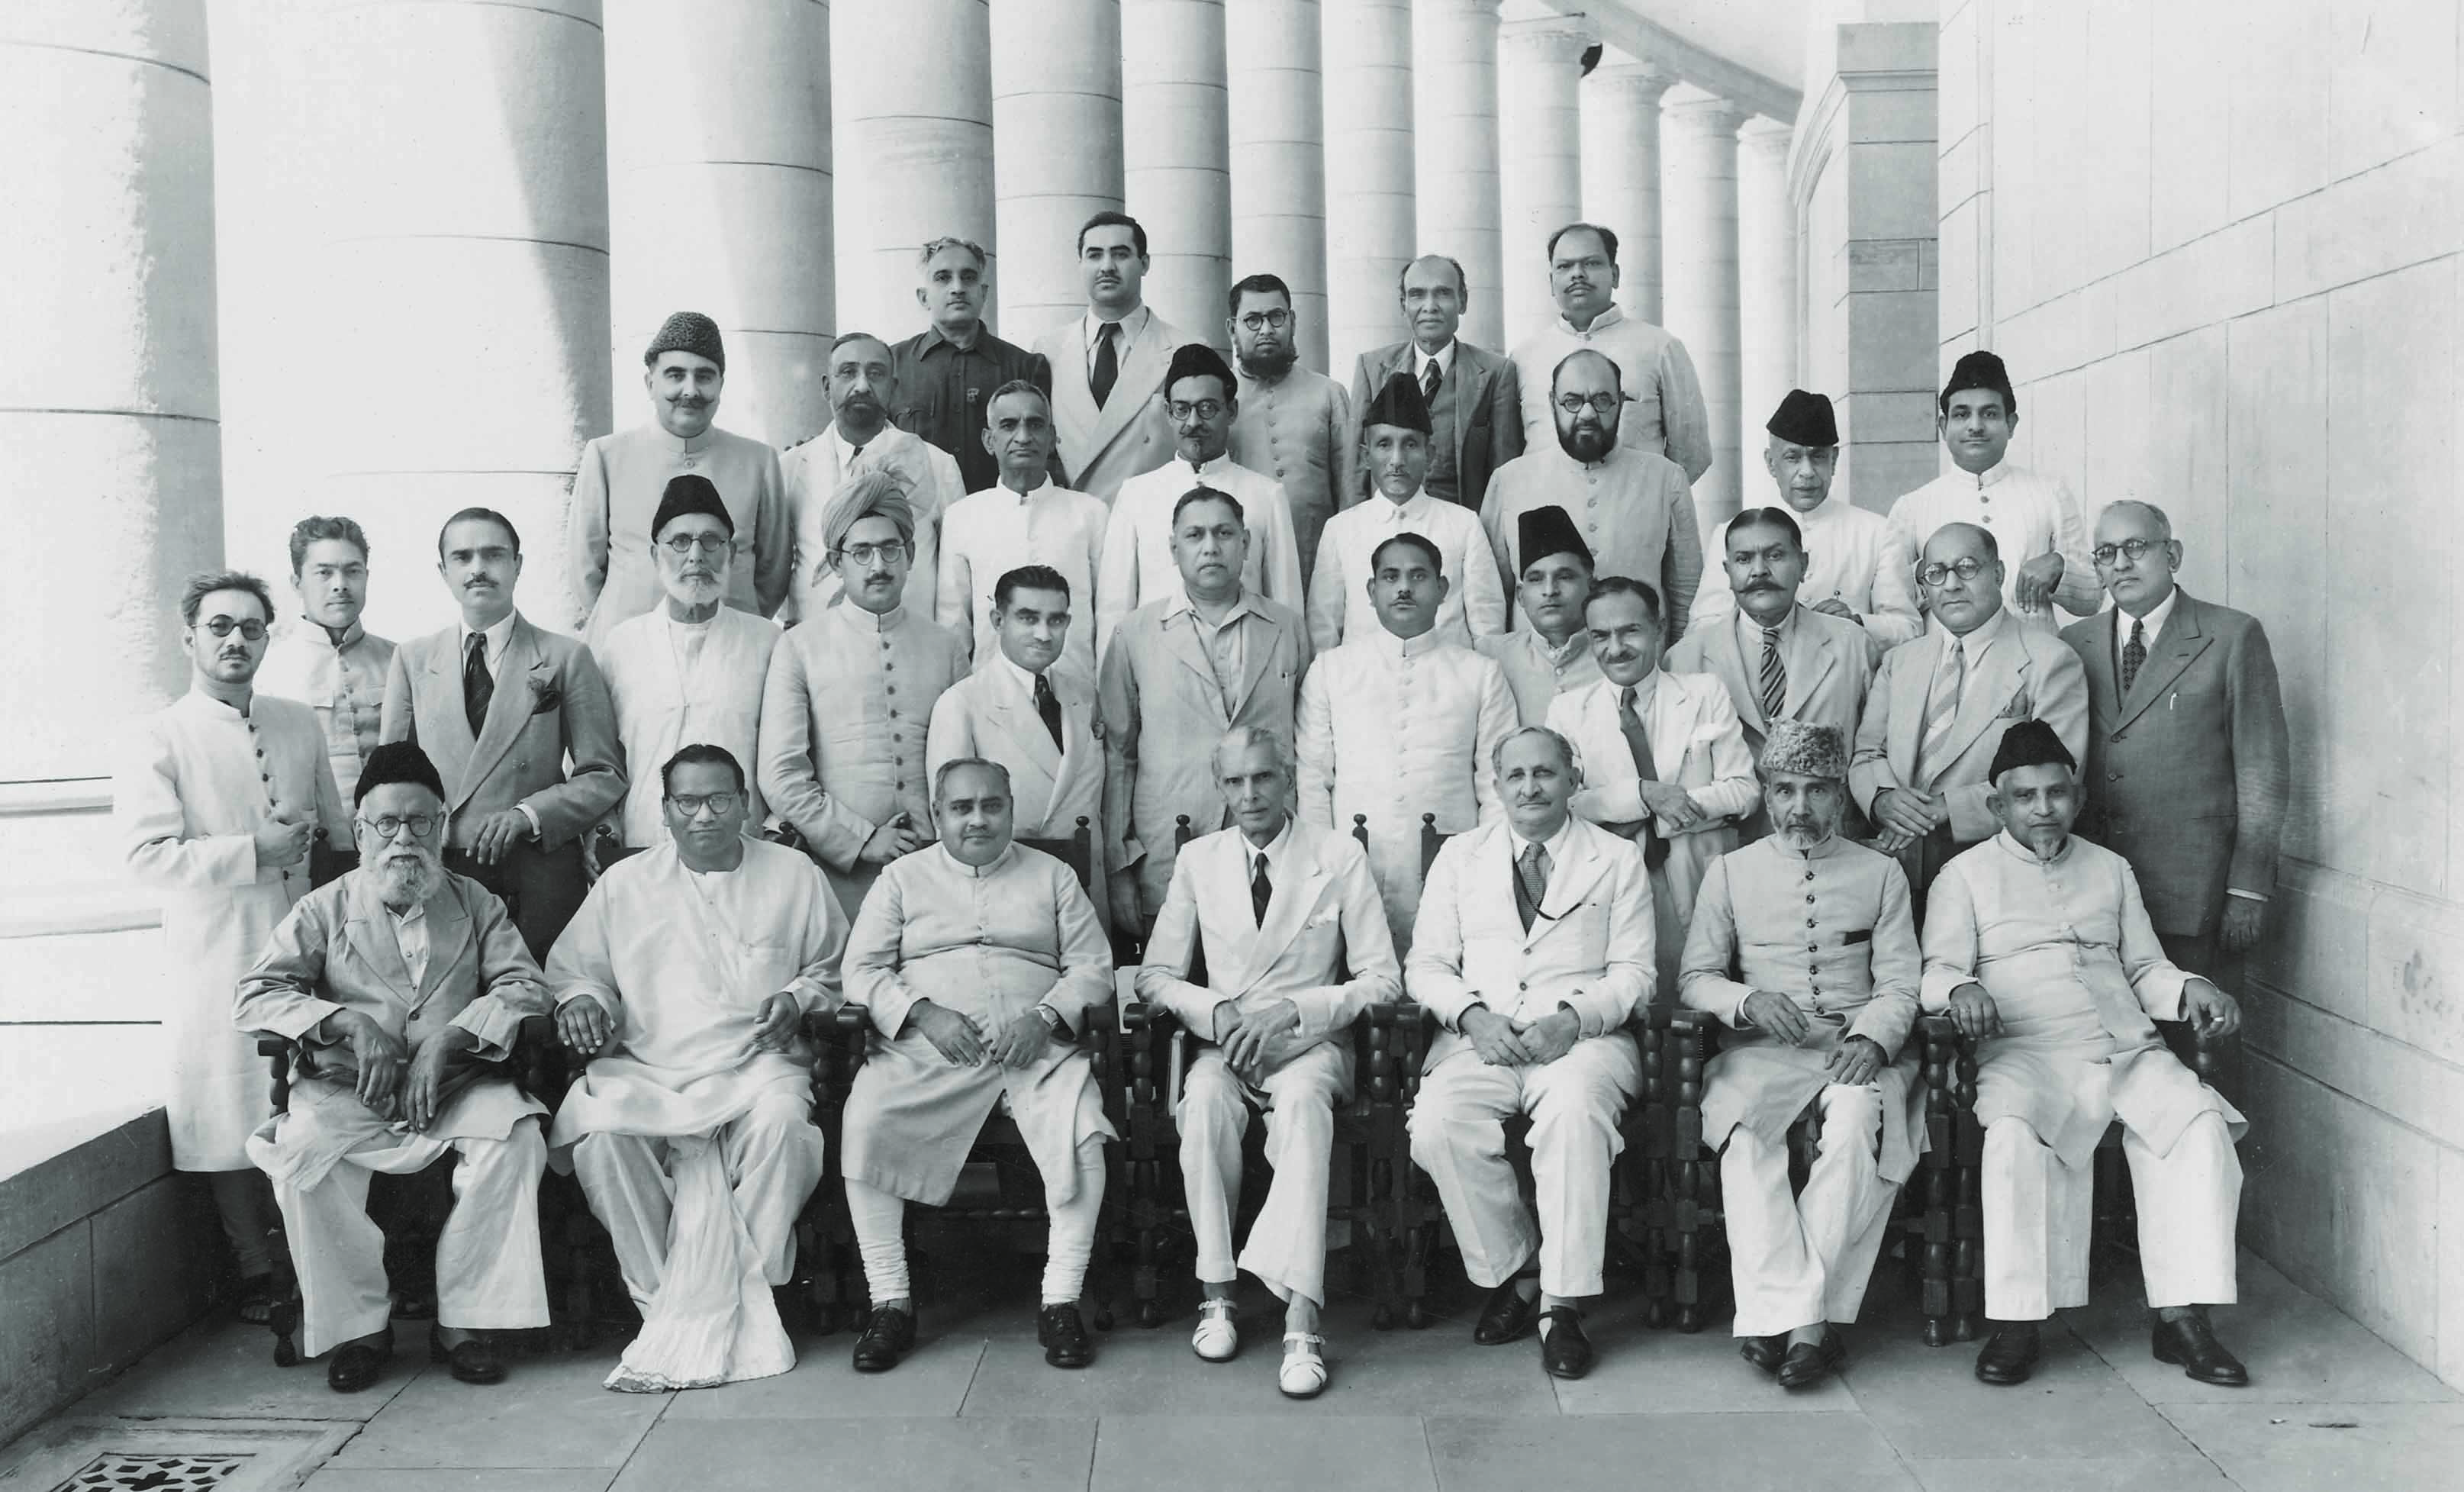 Quaid-i-Azam Mohammad Ali Jinnah (first row, centre) with members of the Central Legislative Assembly for the Muslim League in Delhi, 1946. Seated second and third from the left is Jogendra Nath Mandal and Khawaja Nazimuddin; seated third from the right is Sir Yamin Khan. Mohammad Amir Ahmed Khan, the Raja of Mahmudabad, stands on the extreme left; Nawabzada Liaquat Ali Khan and I.I. Chundrigar are on the extreme right in the second row. — I.I. Chundrigar Family Collection/ Dawn/White Star Archives